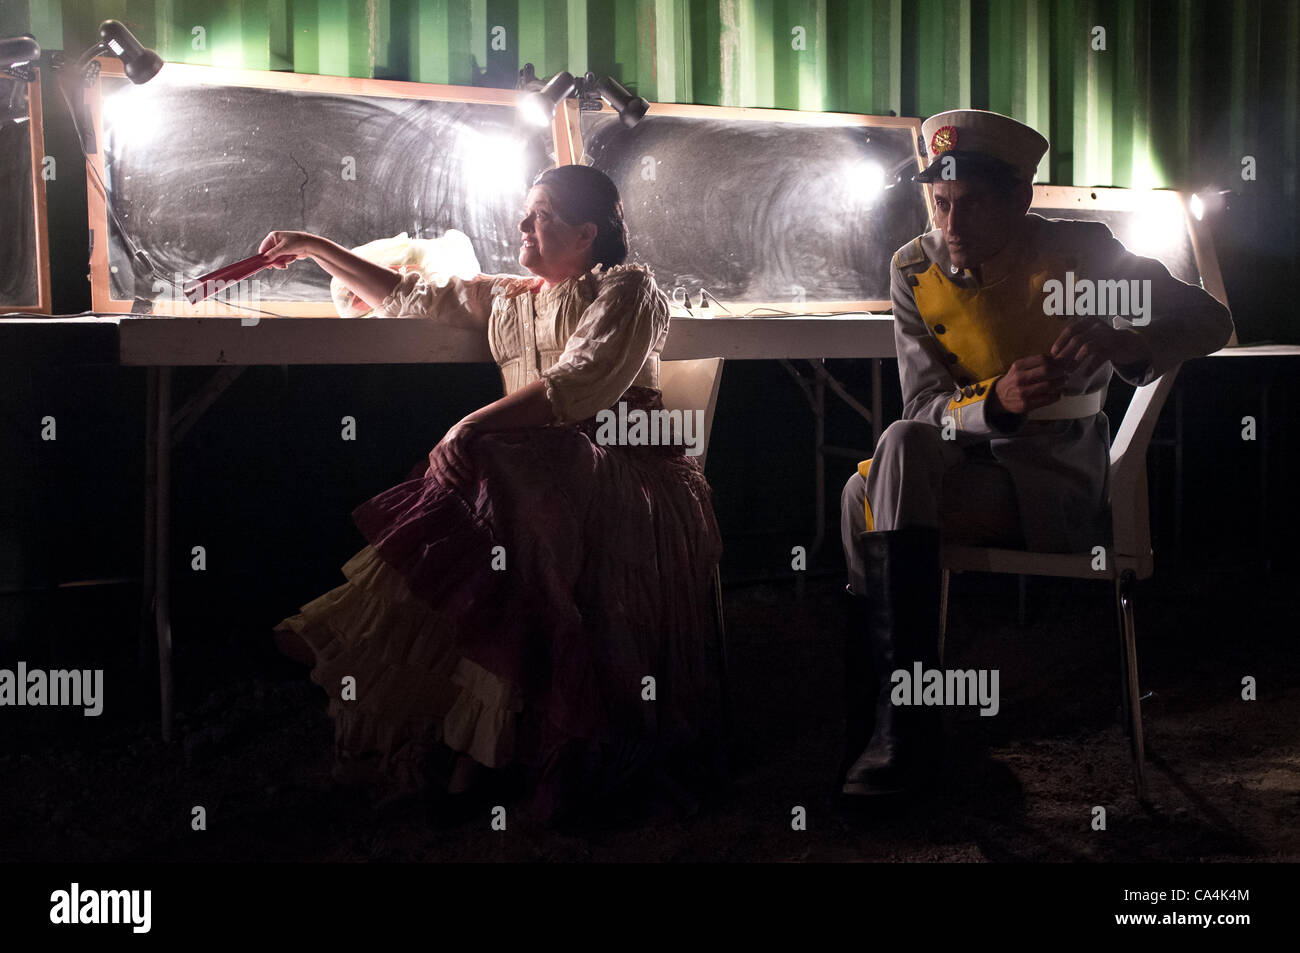 Israeli Opera cast of Carmen, by Georges Bizet, prepares backstage for full dress rehearsal, just one evening before - Stock Image